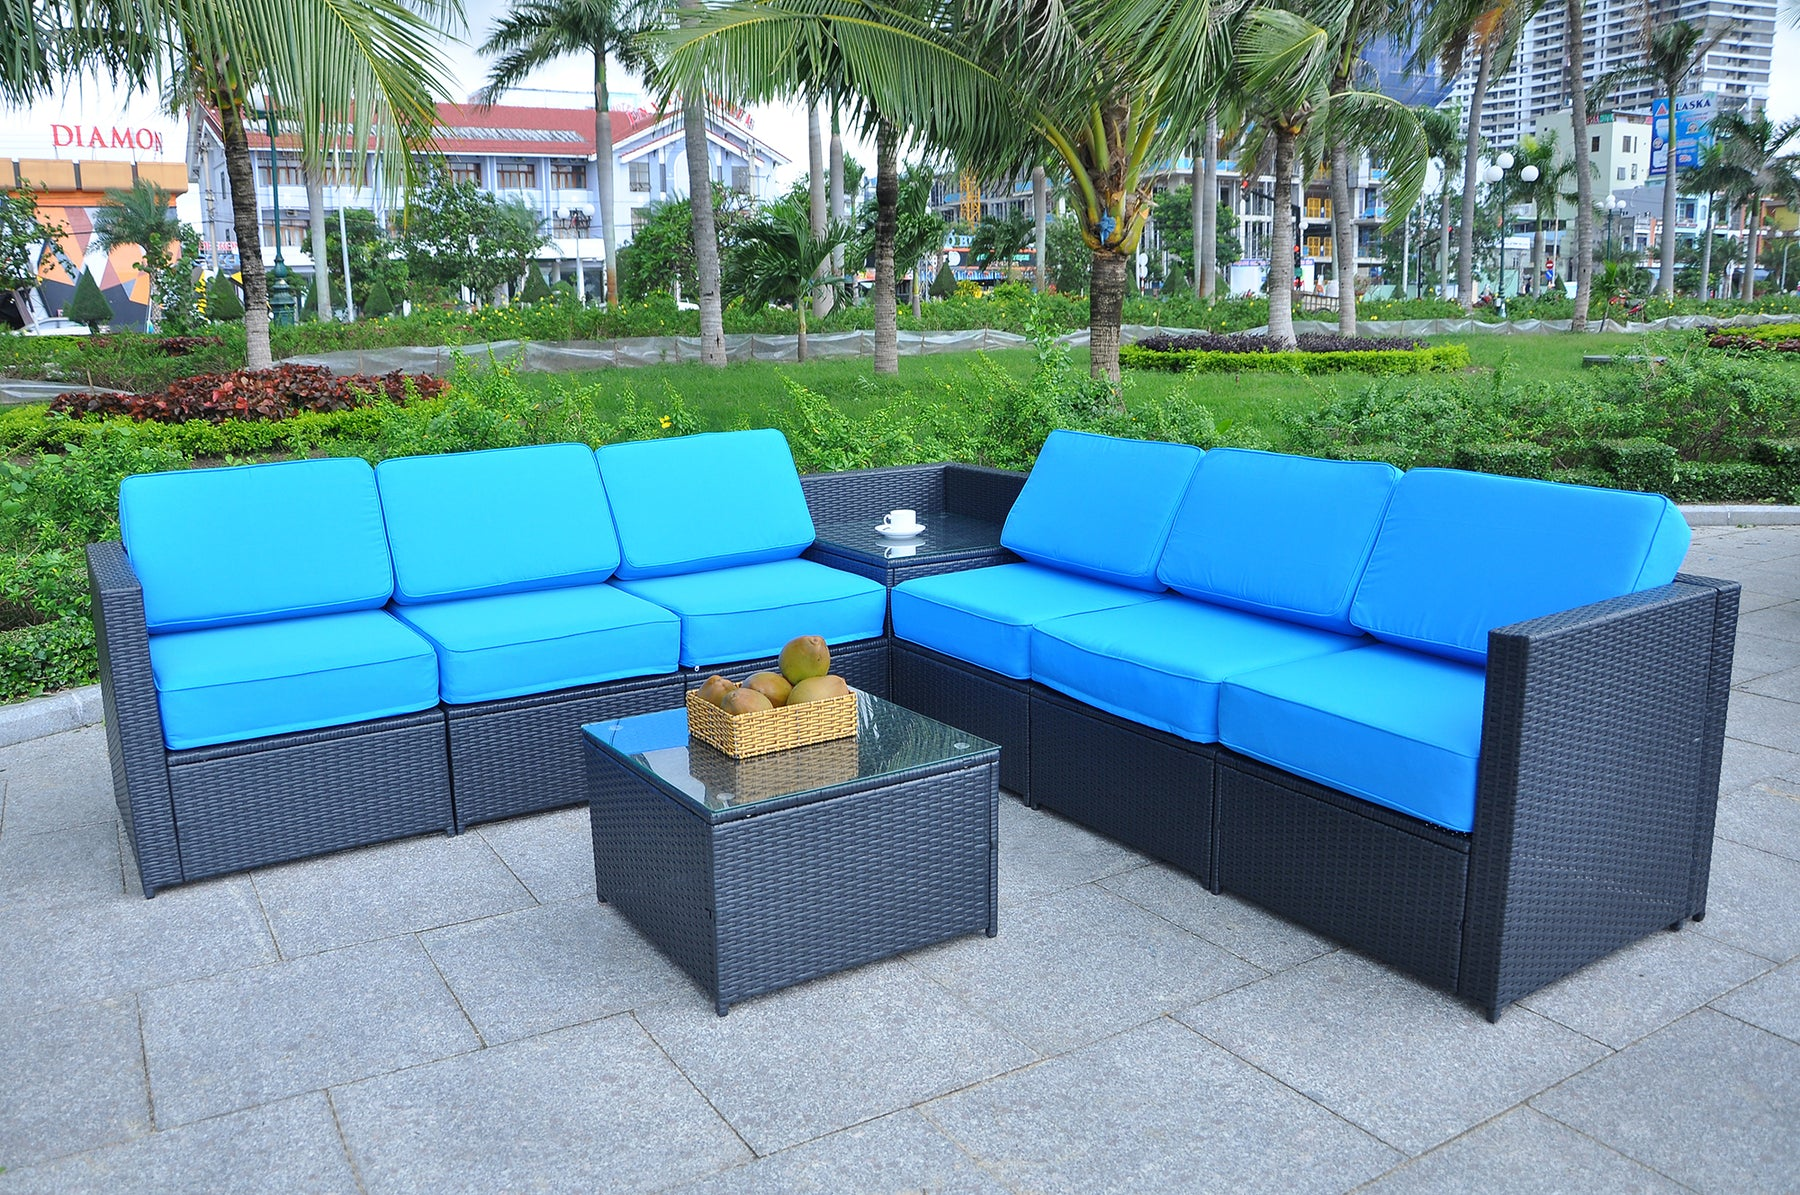 Mcombo Outdoor Patio Black Wicker Furniture Sectional Set All-Weather Resin Rattan Chair Conversation Sofas with Water Resistant Cushion Covers 6085 8PC